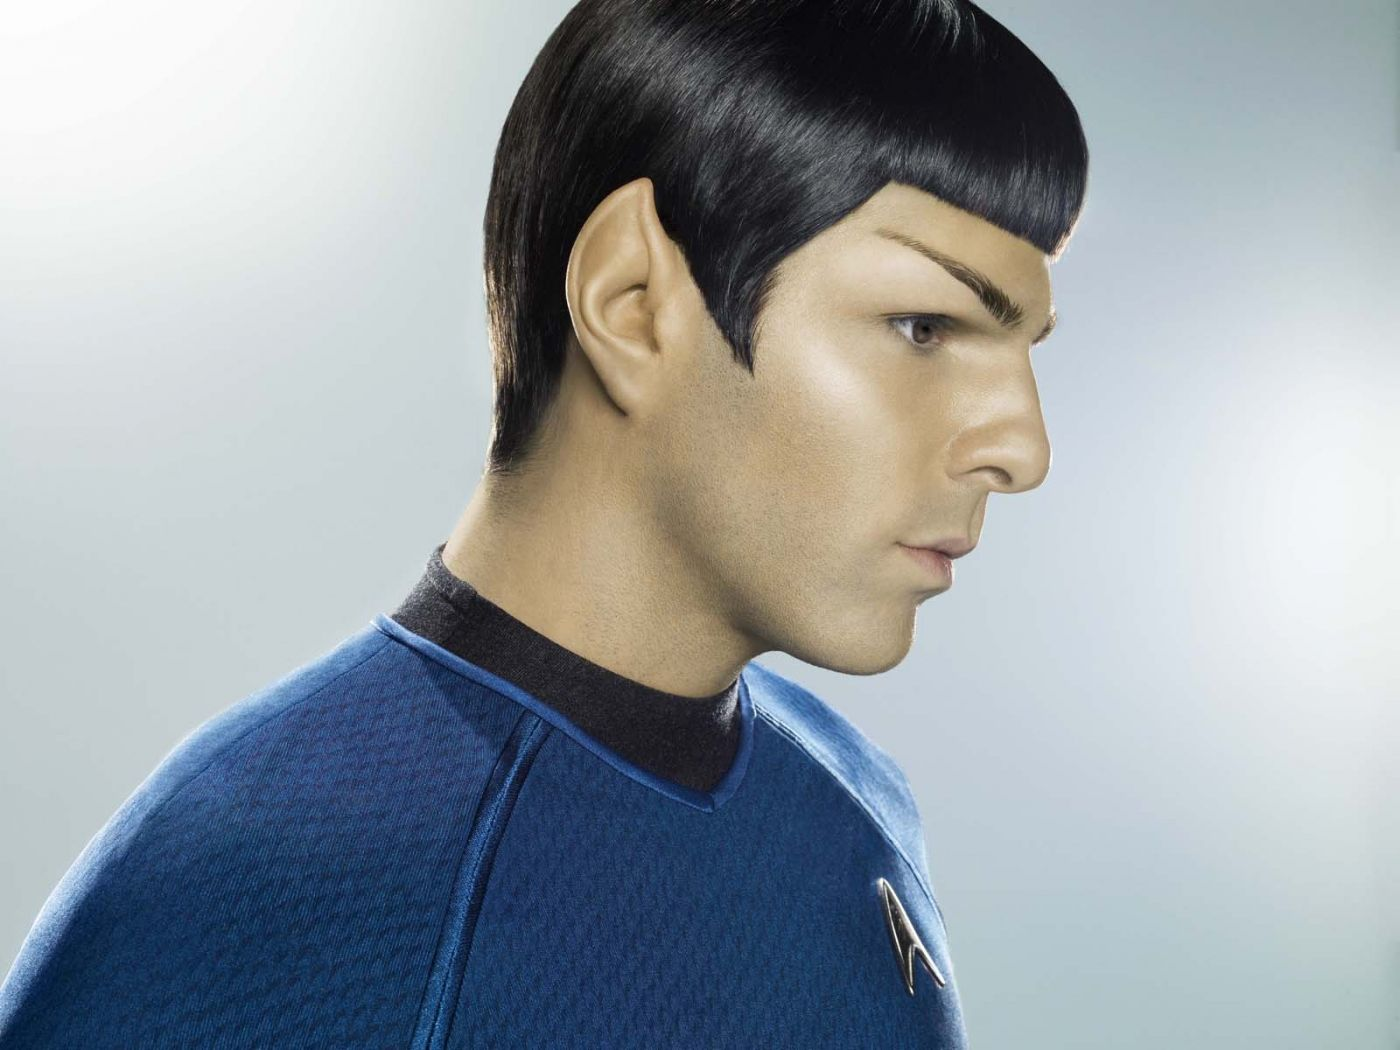 Zachary Quinto As Spock Side Portrait Wallpaper 1400x1050